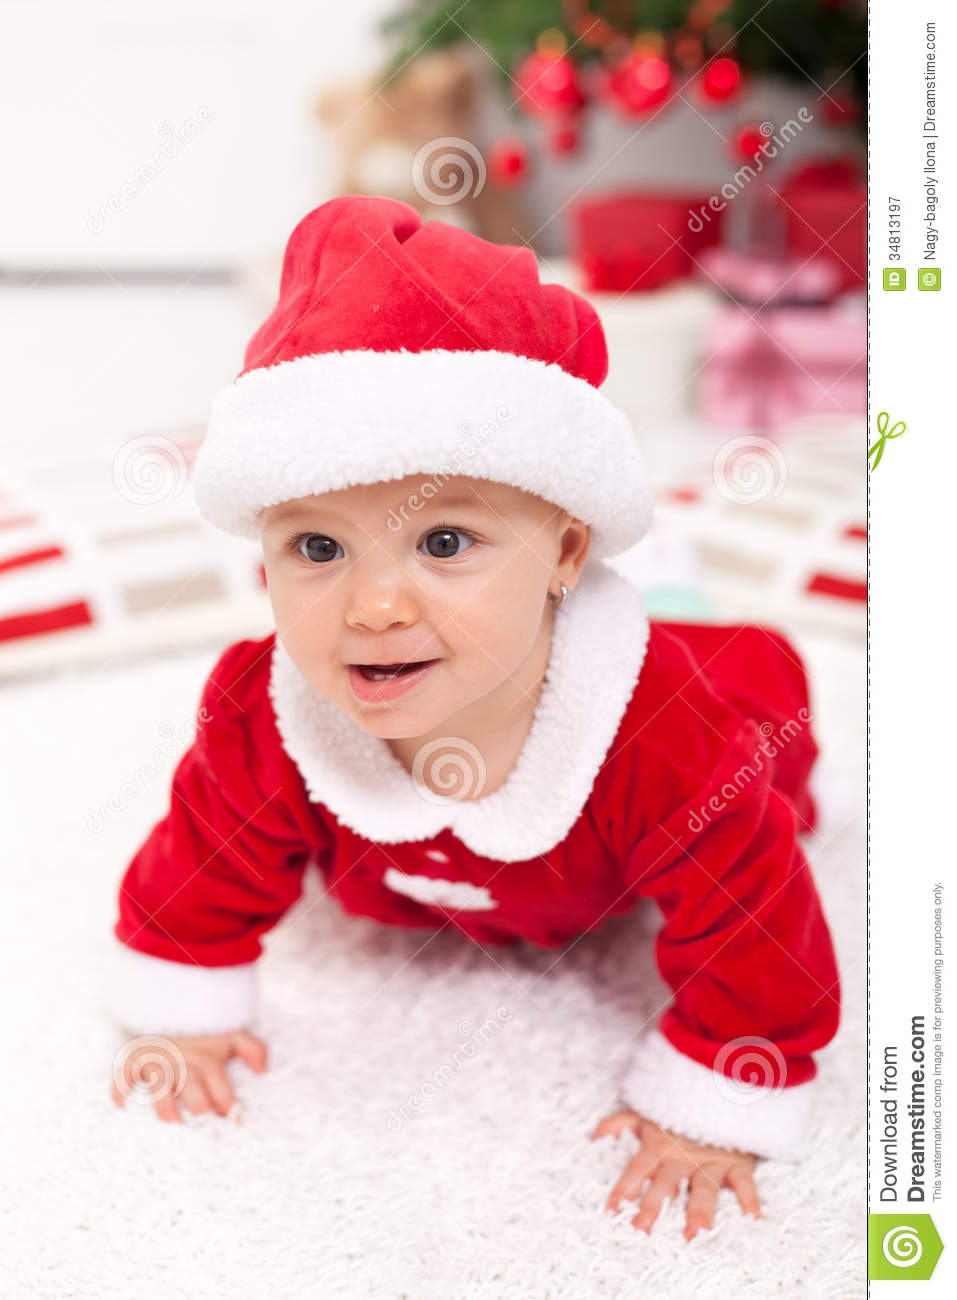 Baby Girl In Santa Outfit Crawling Royalty Free Stock Photography ...